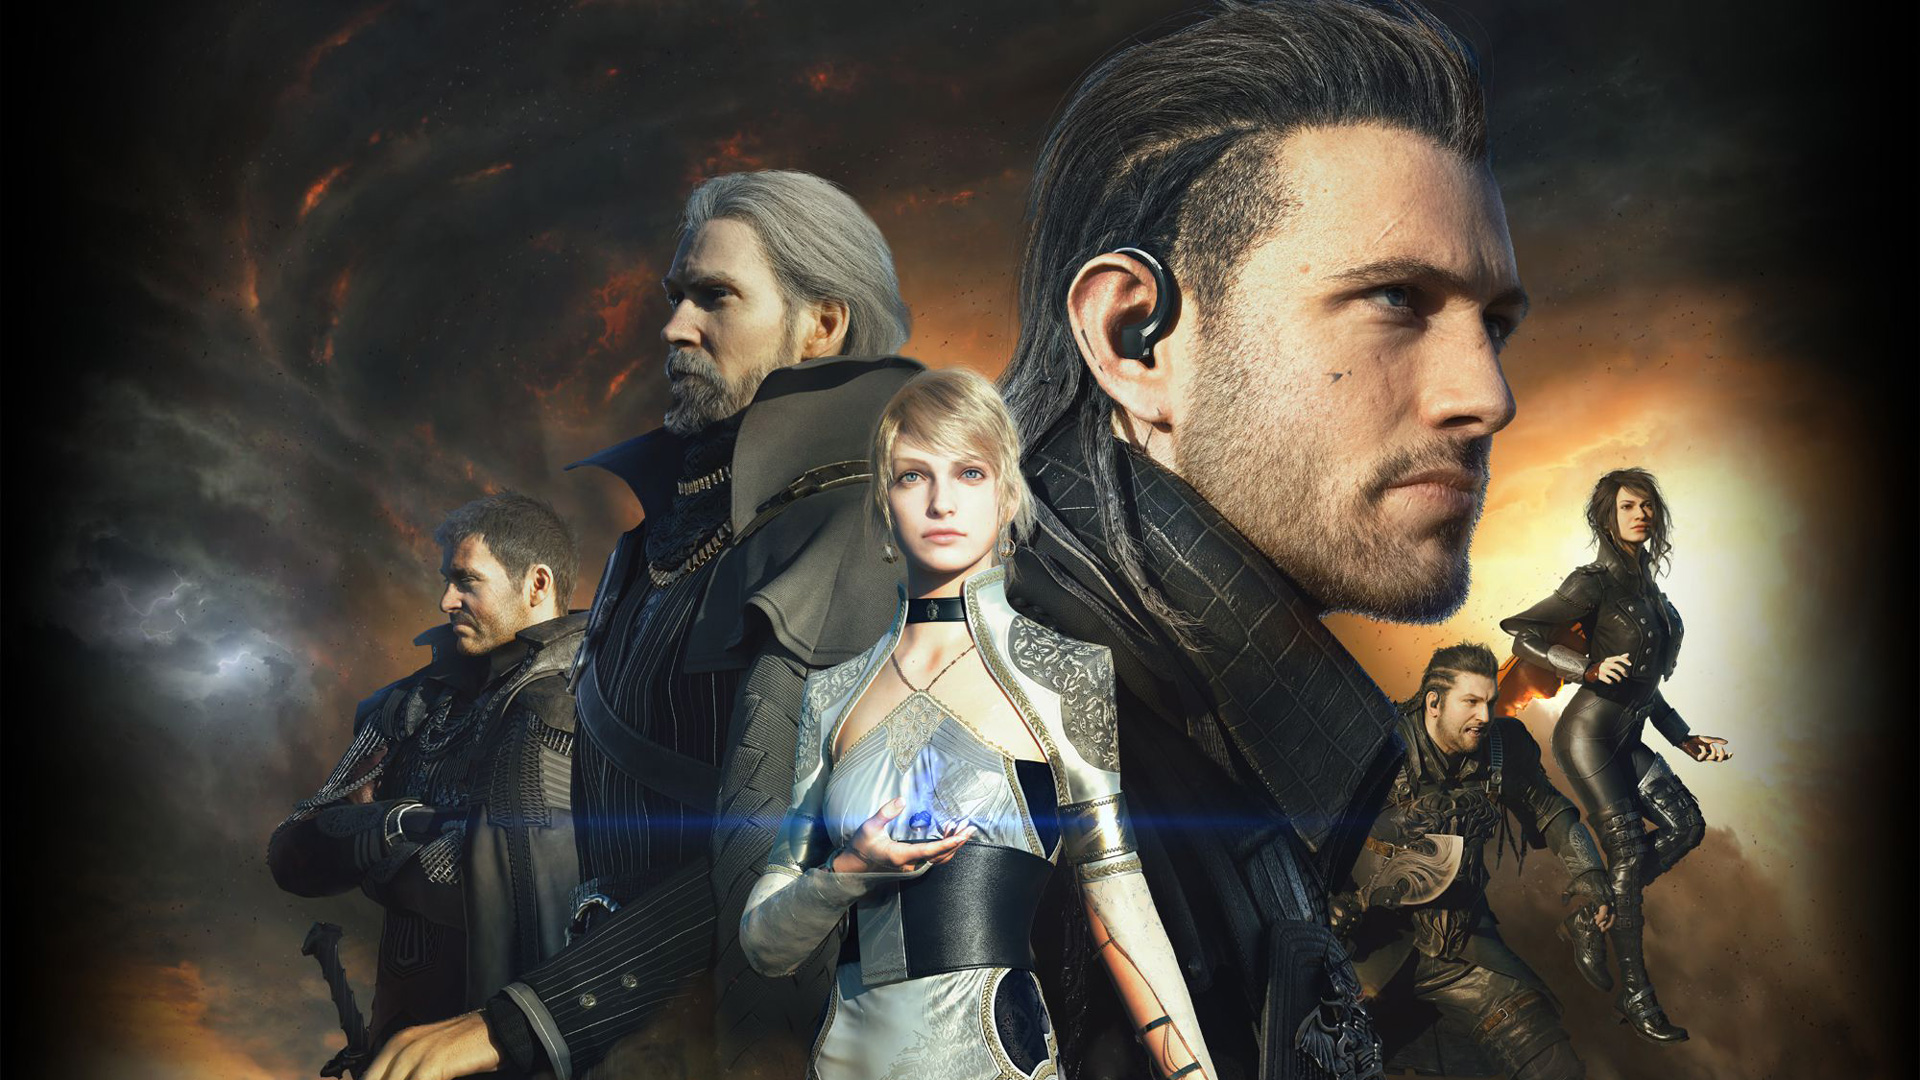 Final Fantasy Xv 4k Ultra Hd Wallpaper: Kingsglaive Final Fantasy XV, HD Movies, 4k Wallpapers